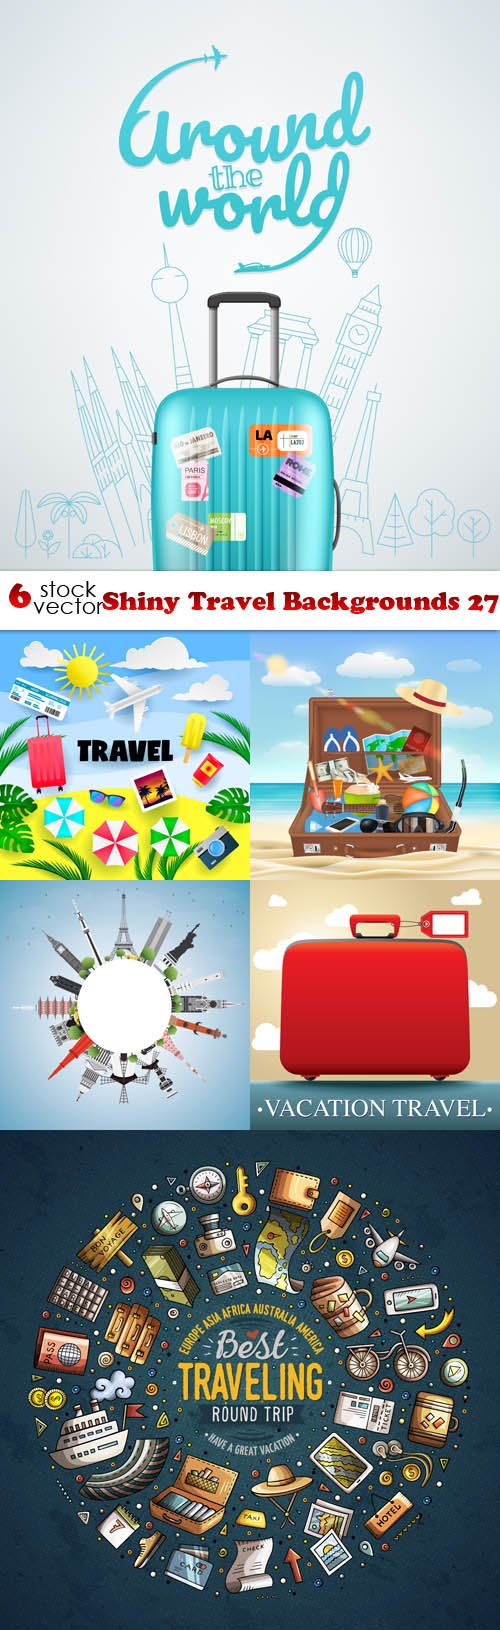 Vectors - Shiny Travel Backgrounds 27